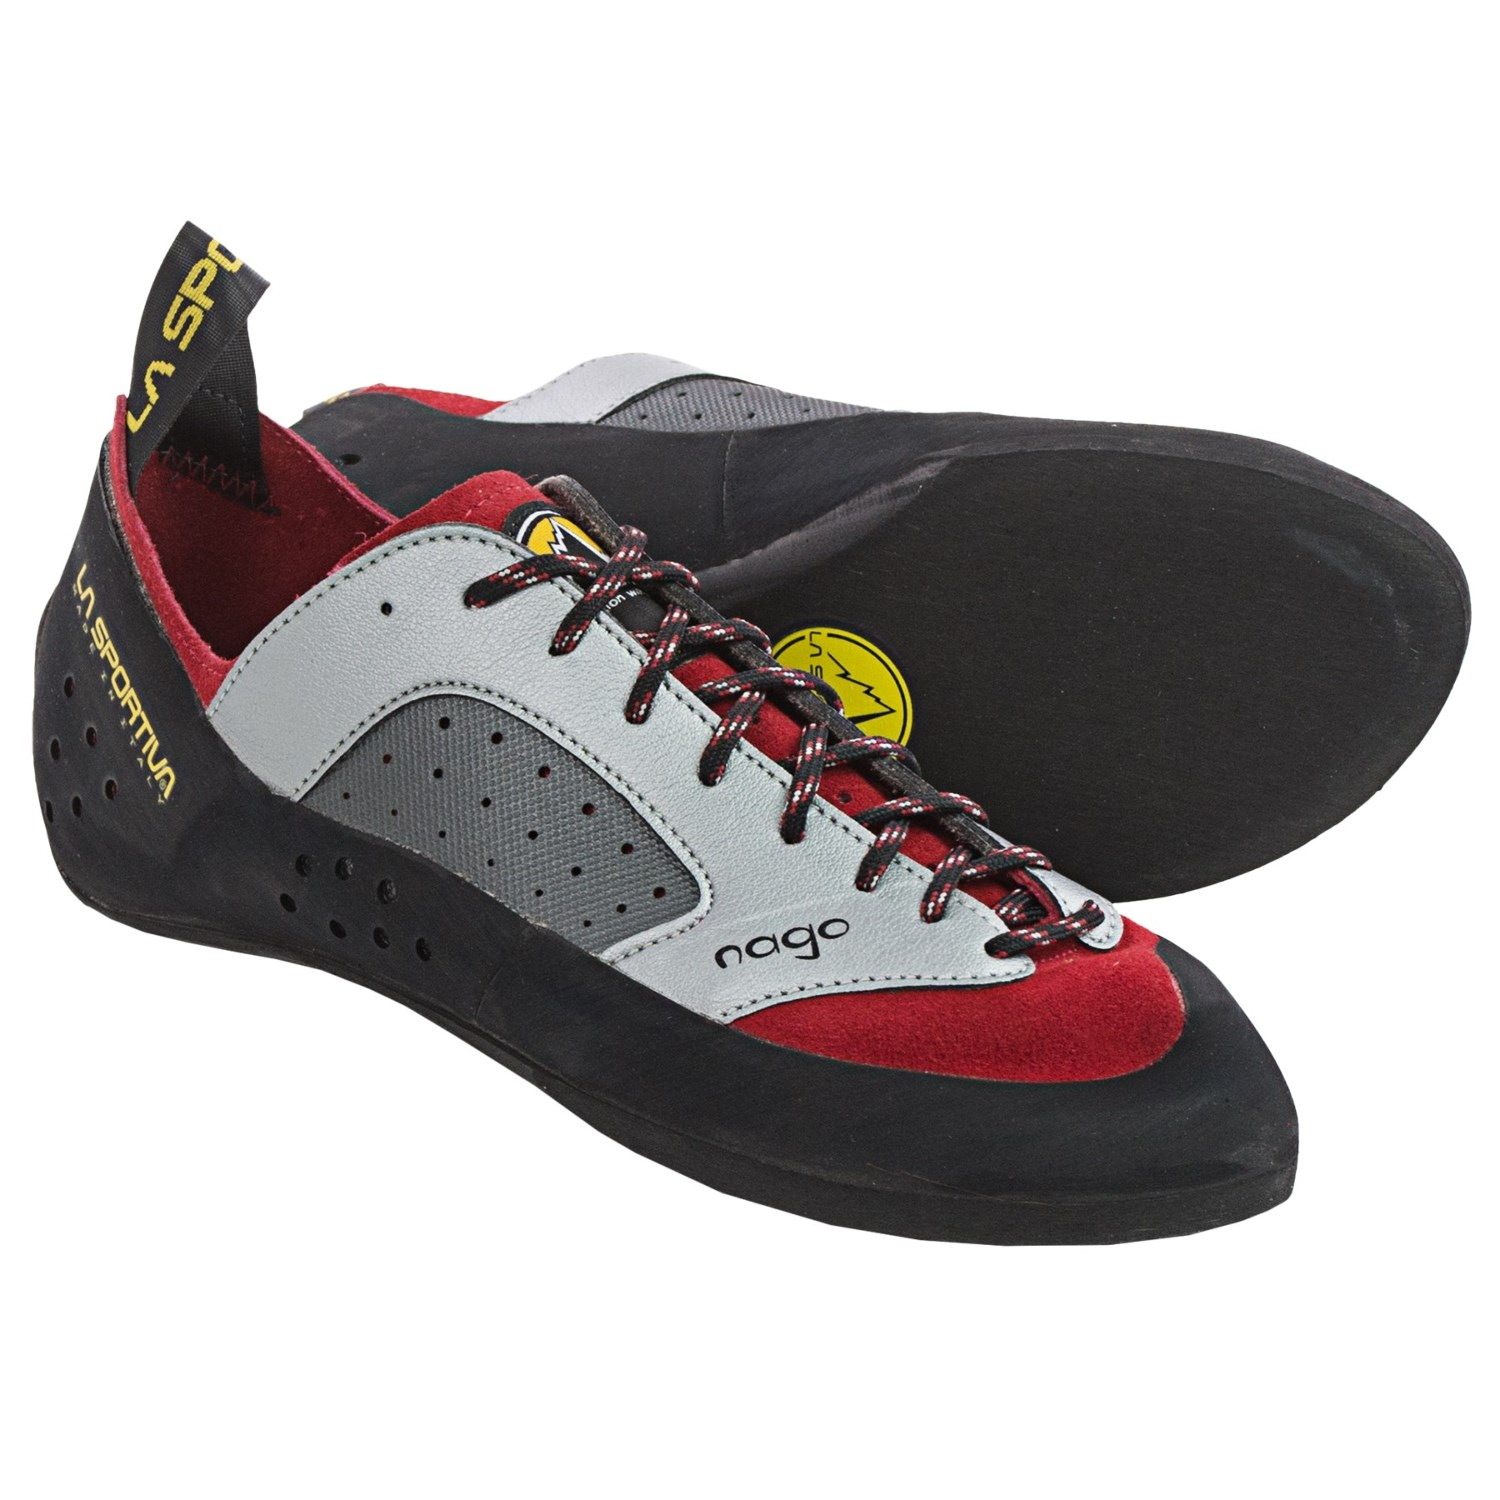 Nago Red Climbing Shoes